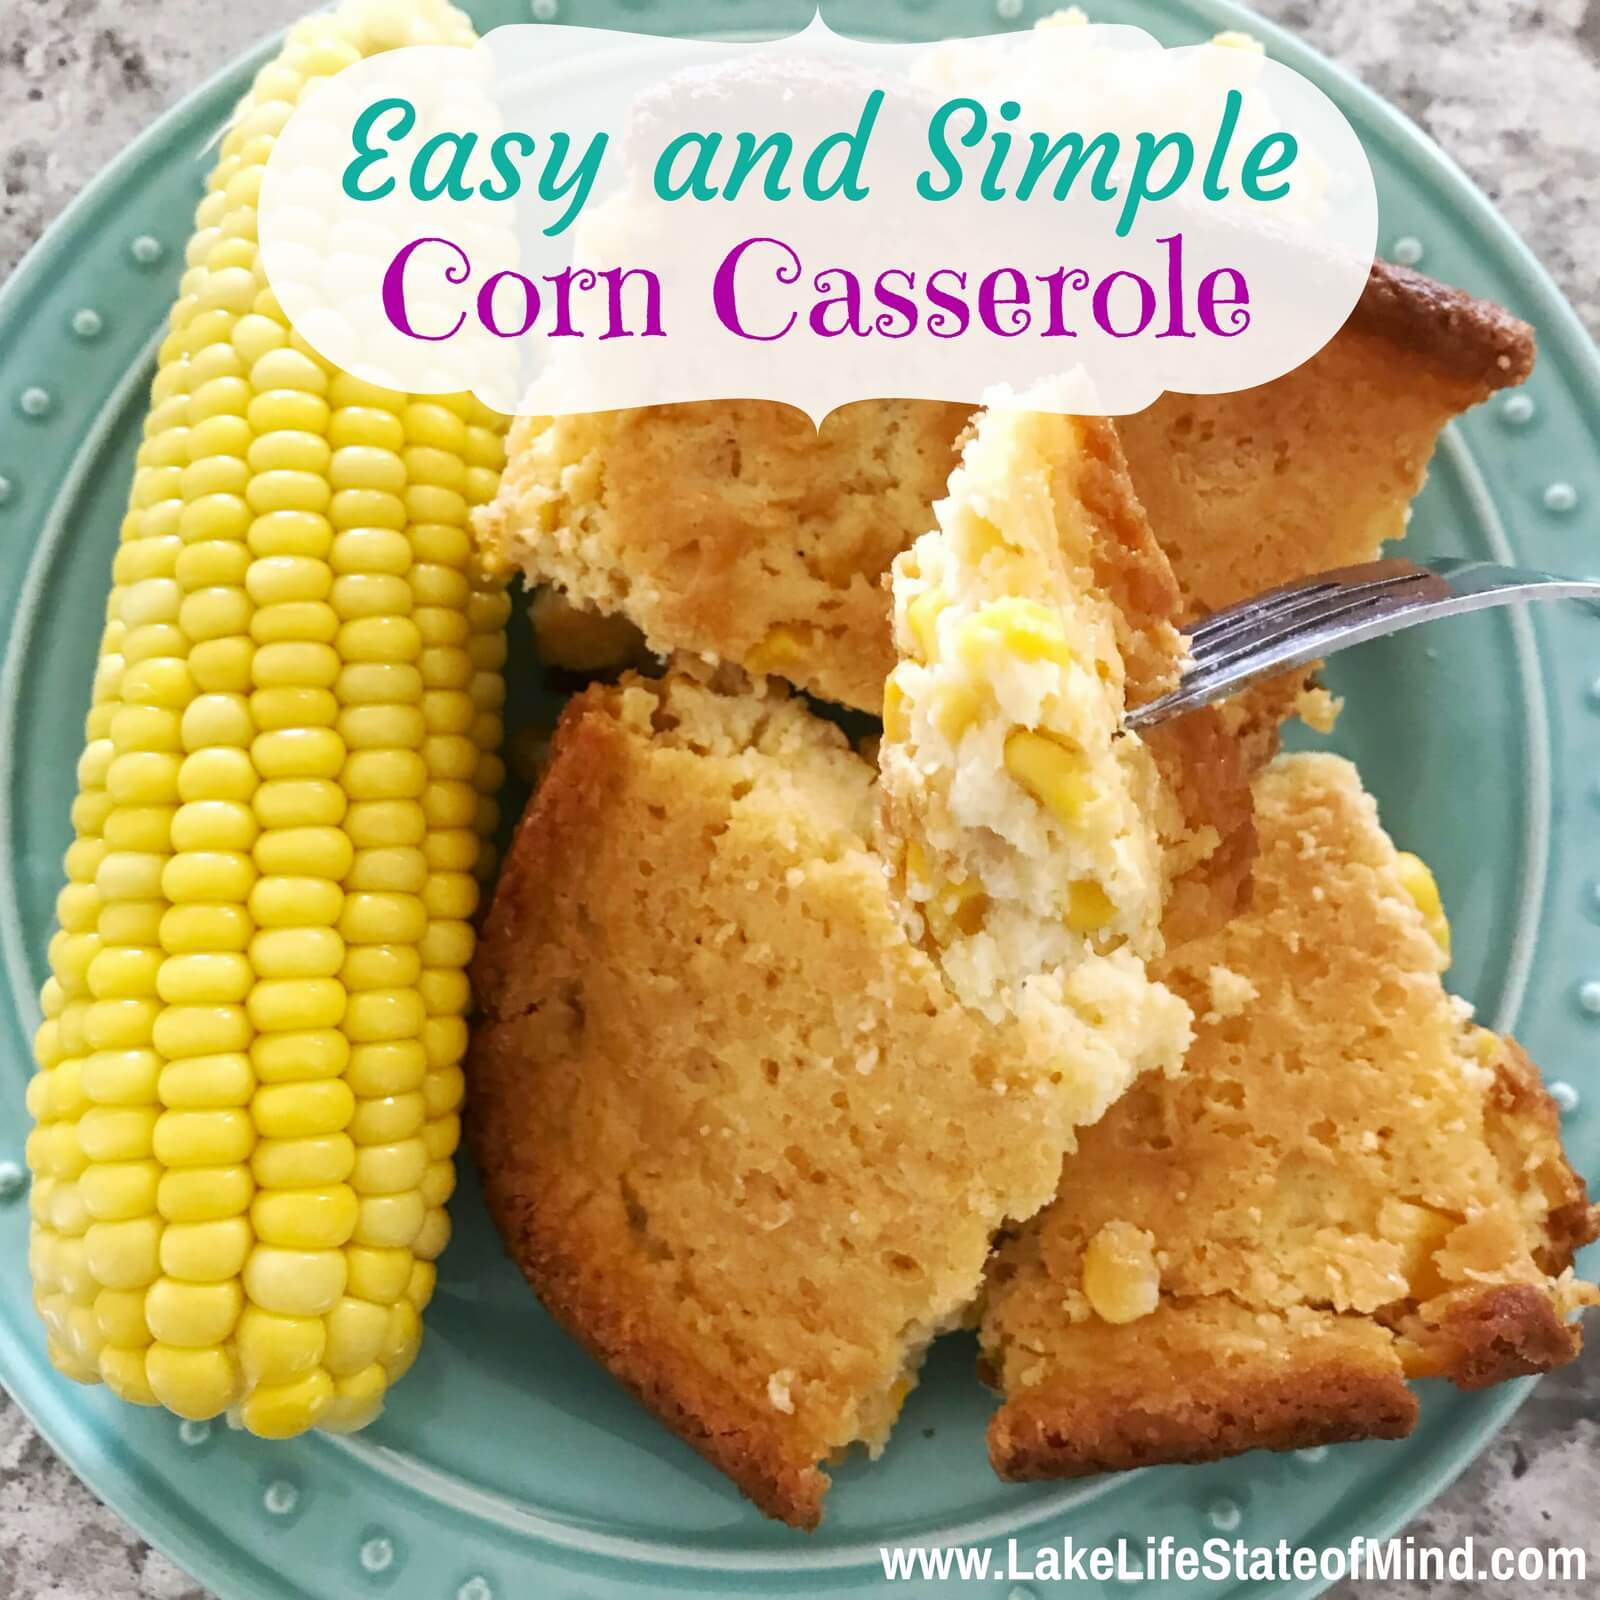 Quick and Easy Corn Casserole